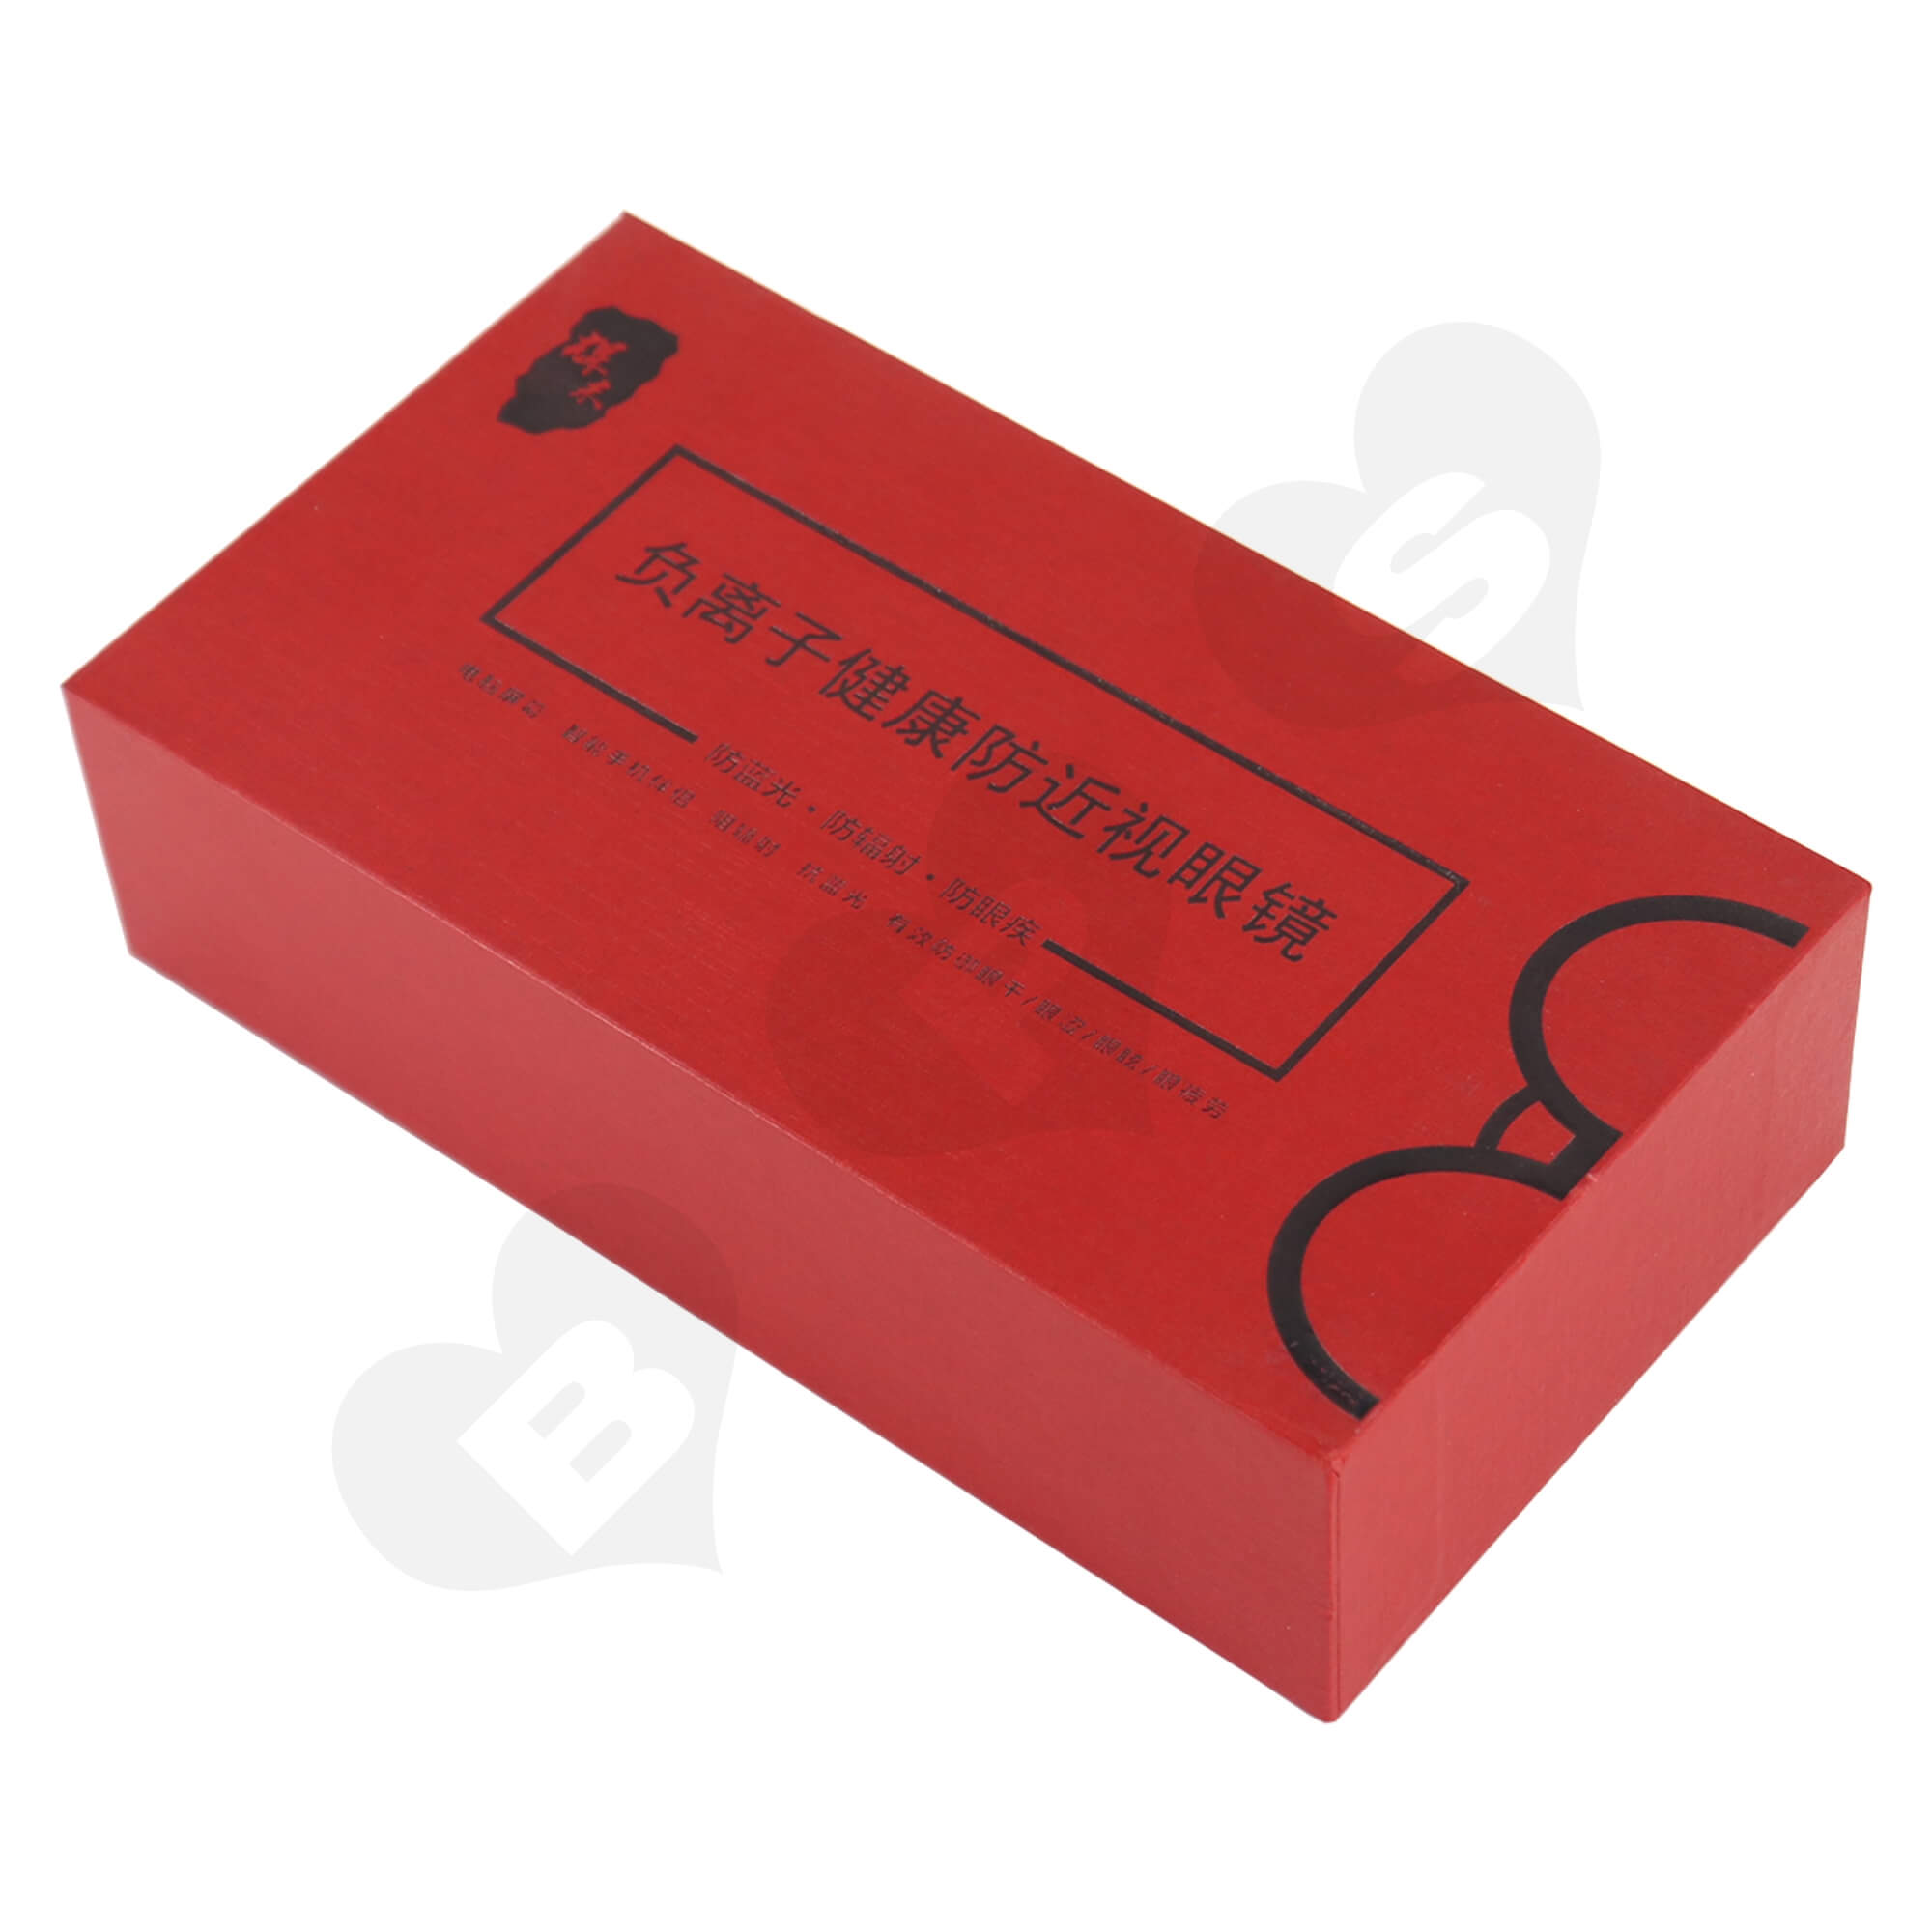 Cardboard Foil Stamping Rigid Set-Up Box For Packing Anti-Myopia Glasses Side View One